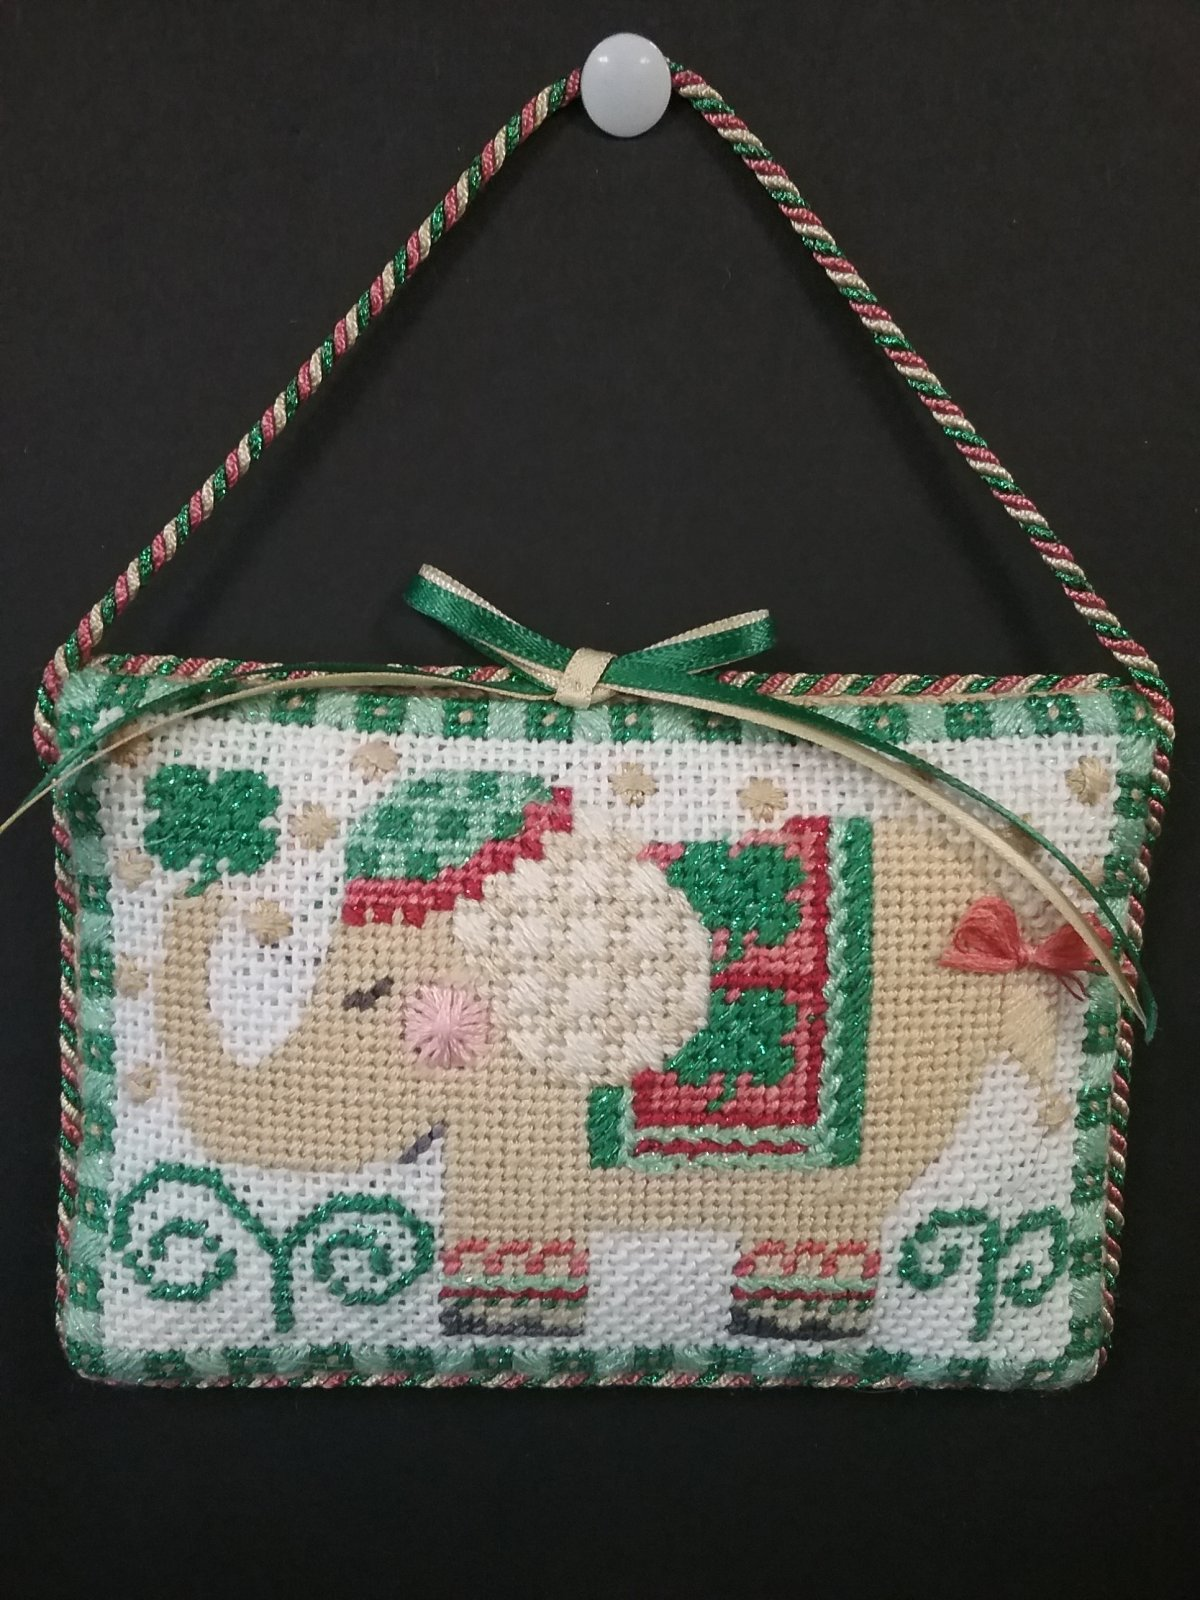 Danji St. Patrick's Elephant Ornament- Stitched by Cindy C.